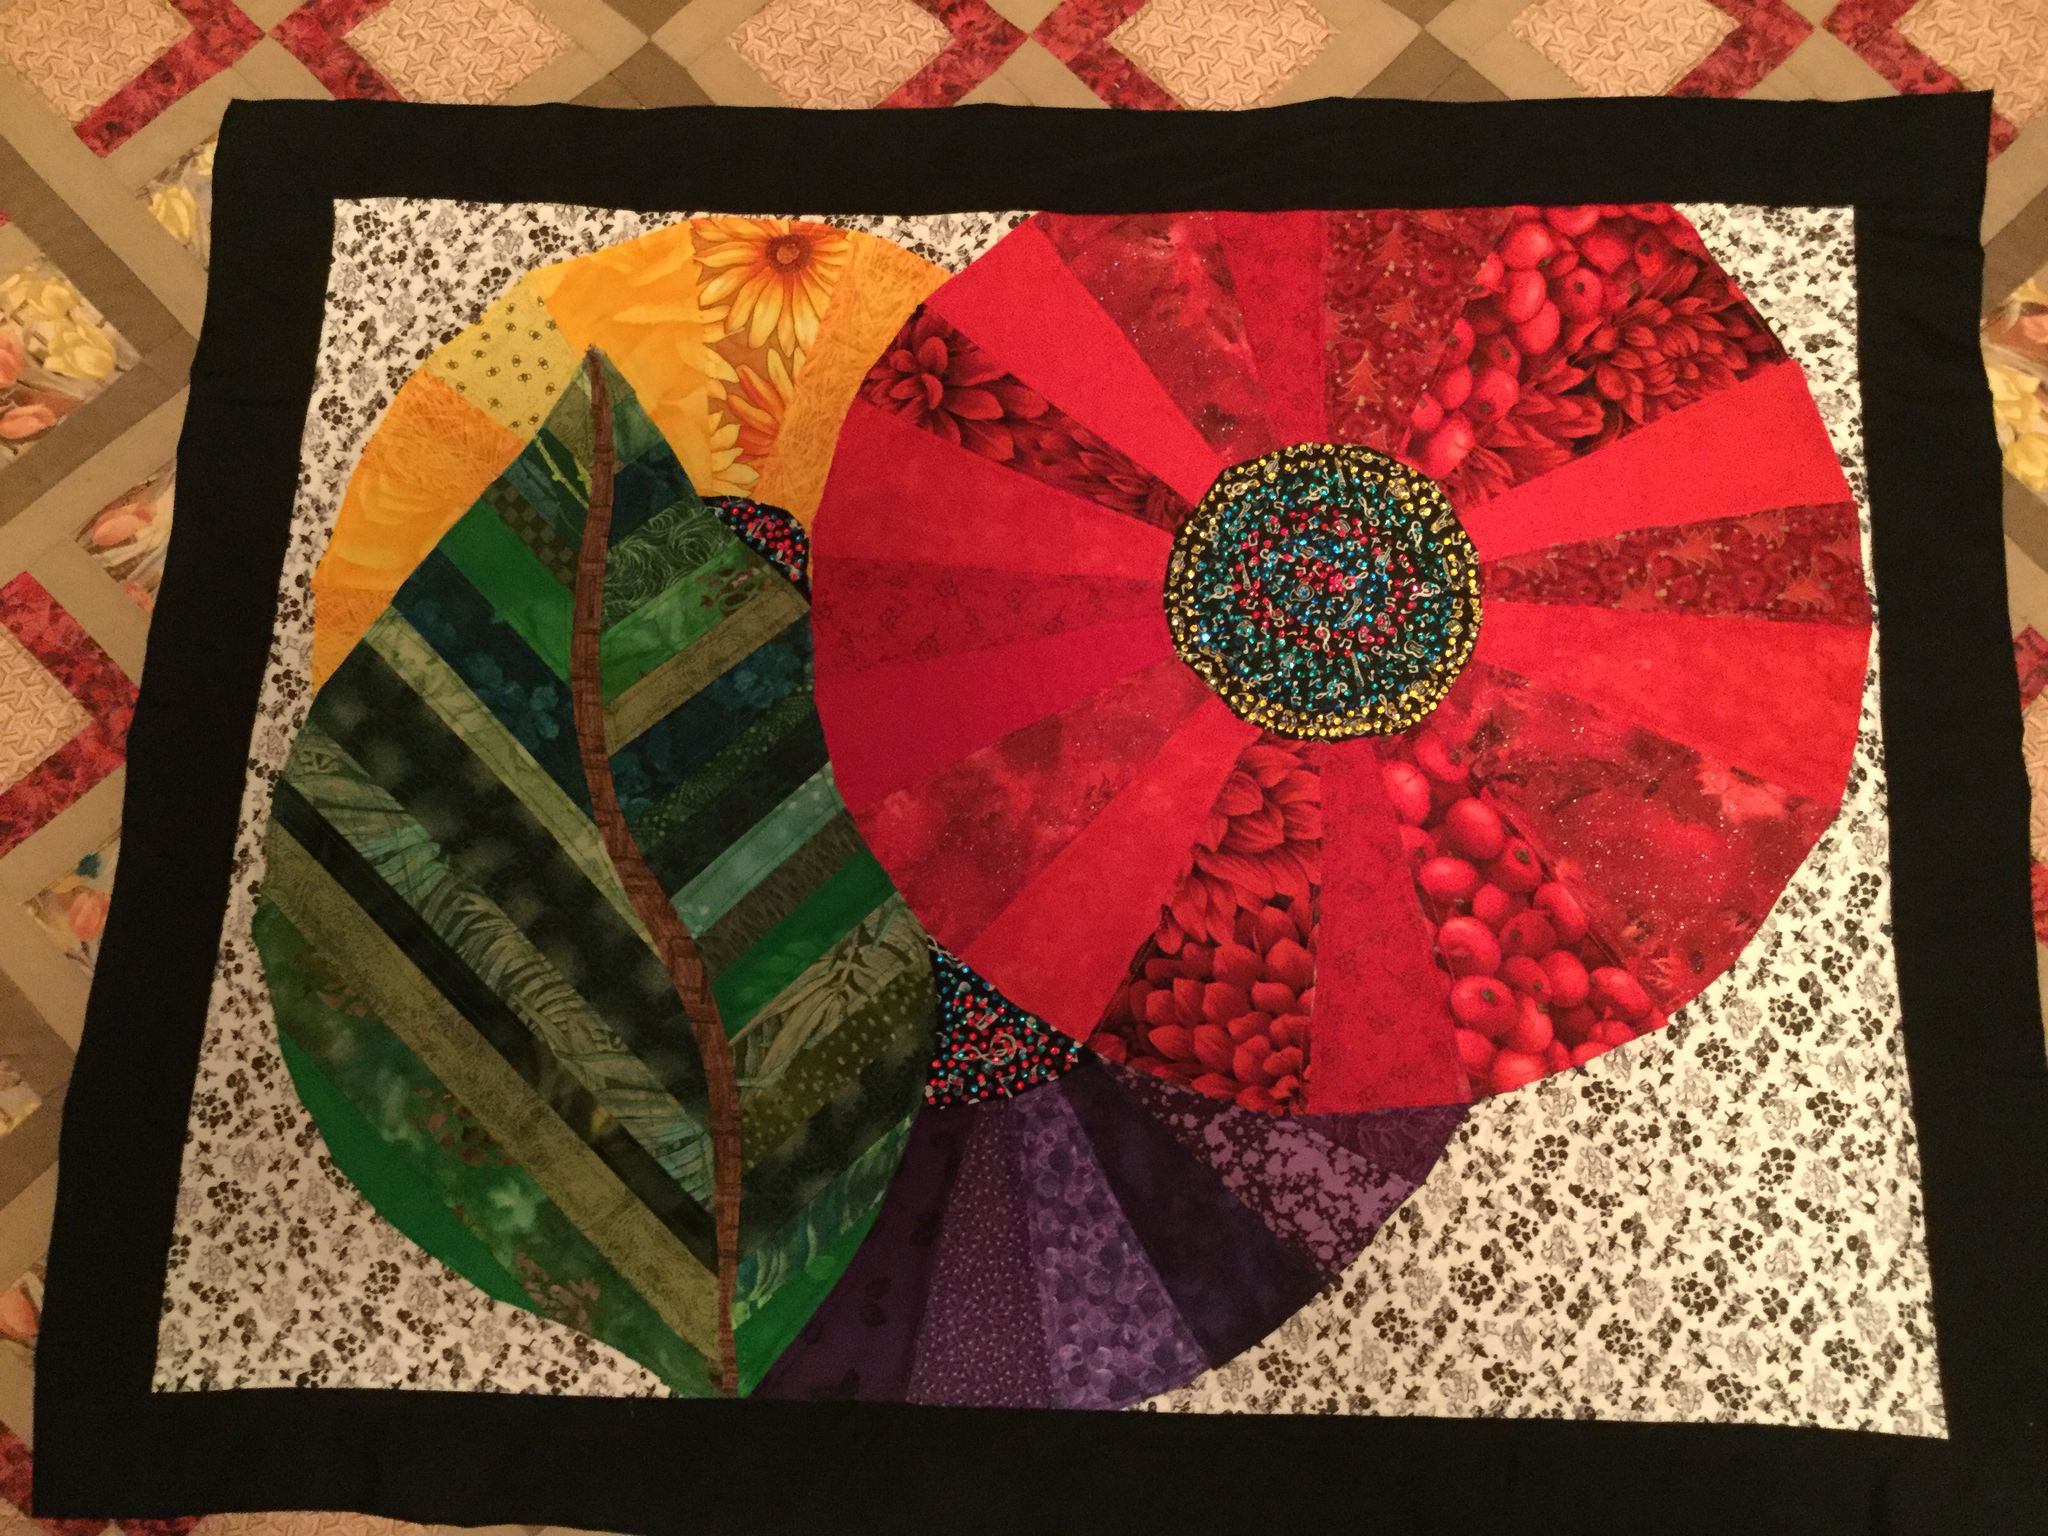 Pattern by Juanita Yeager. Designed and quilted by me.